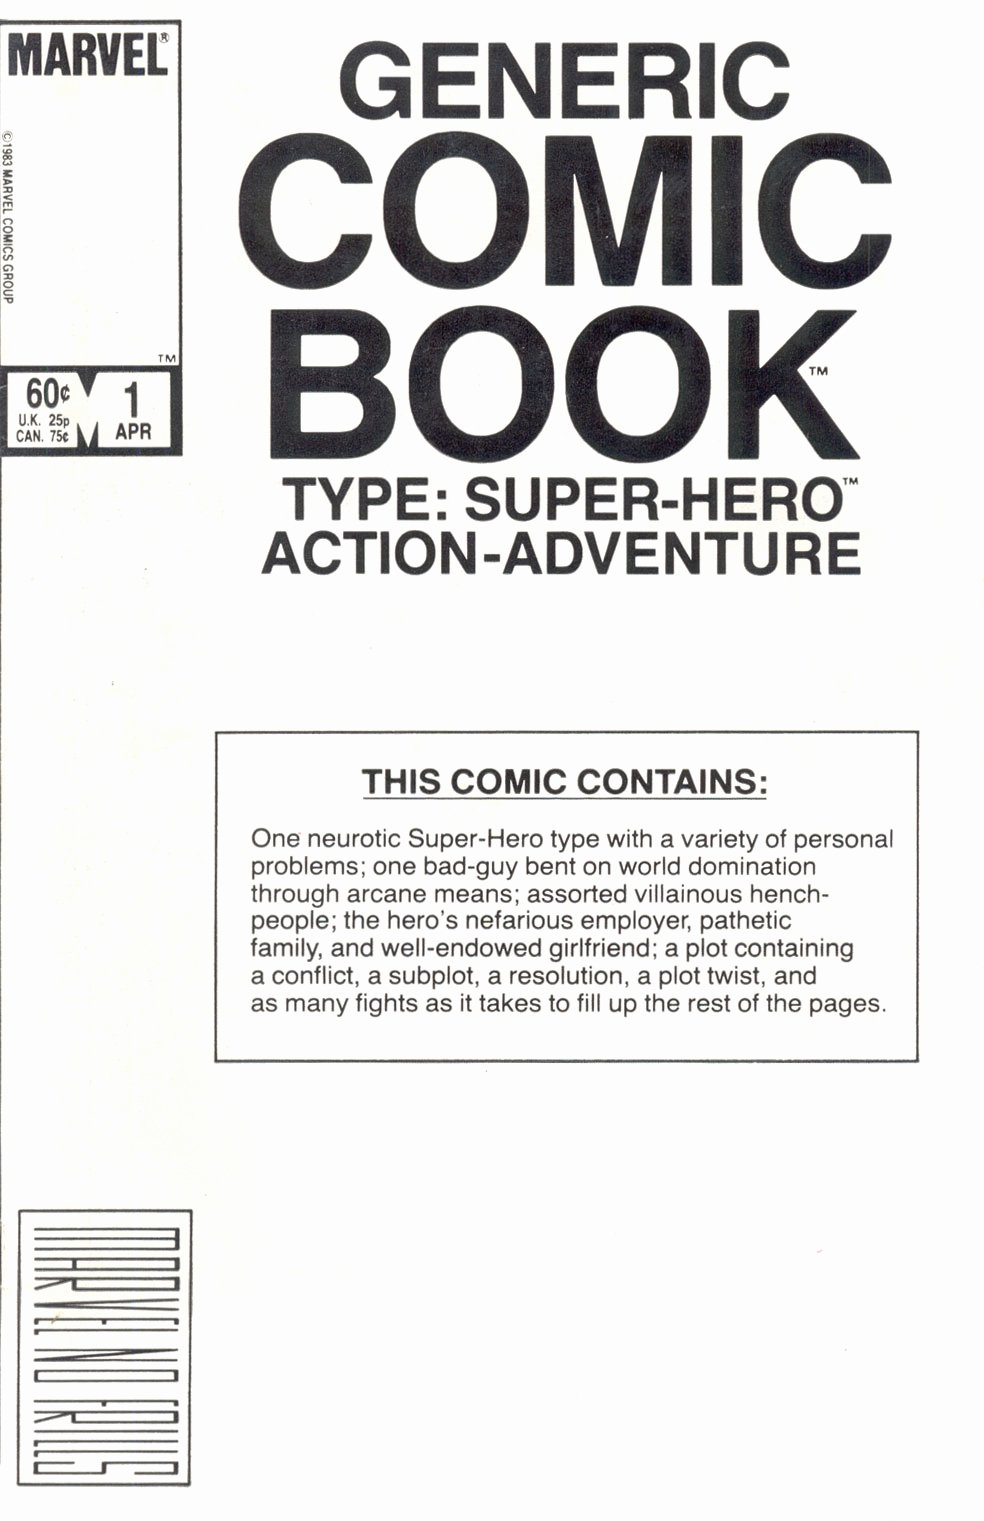 Comic Book Cover Template New Marvel Ics Of the 1980s 1984 the Generic Ic Book